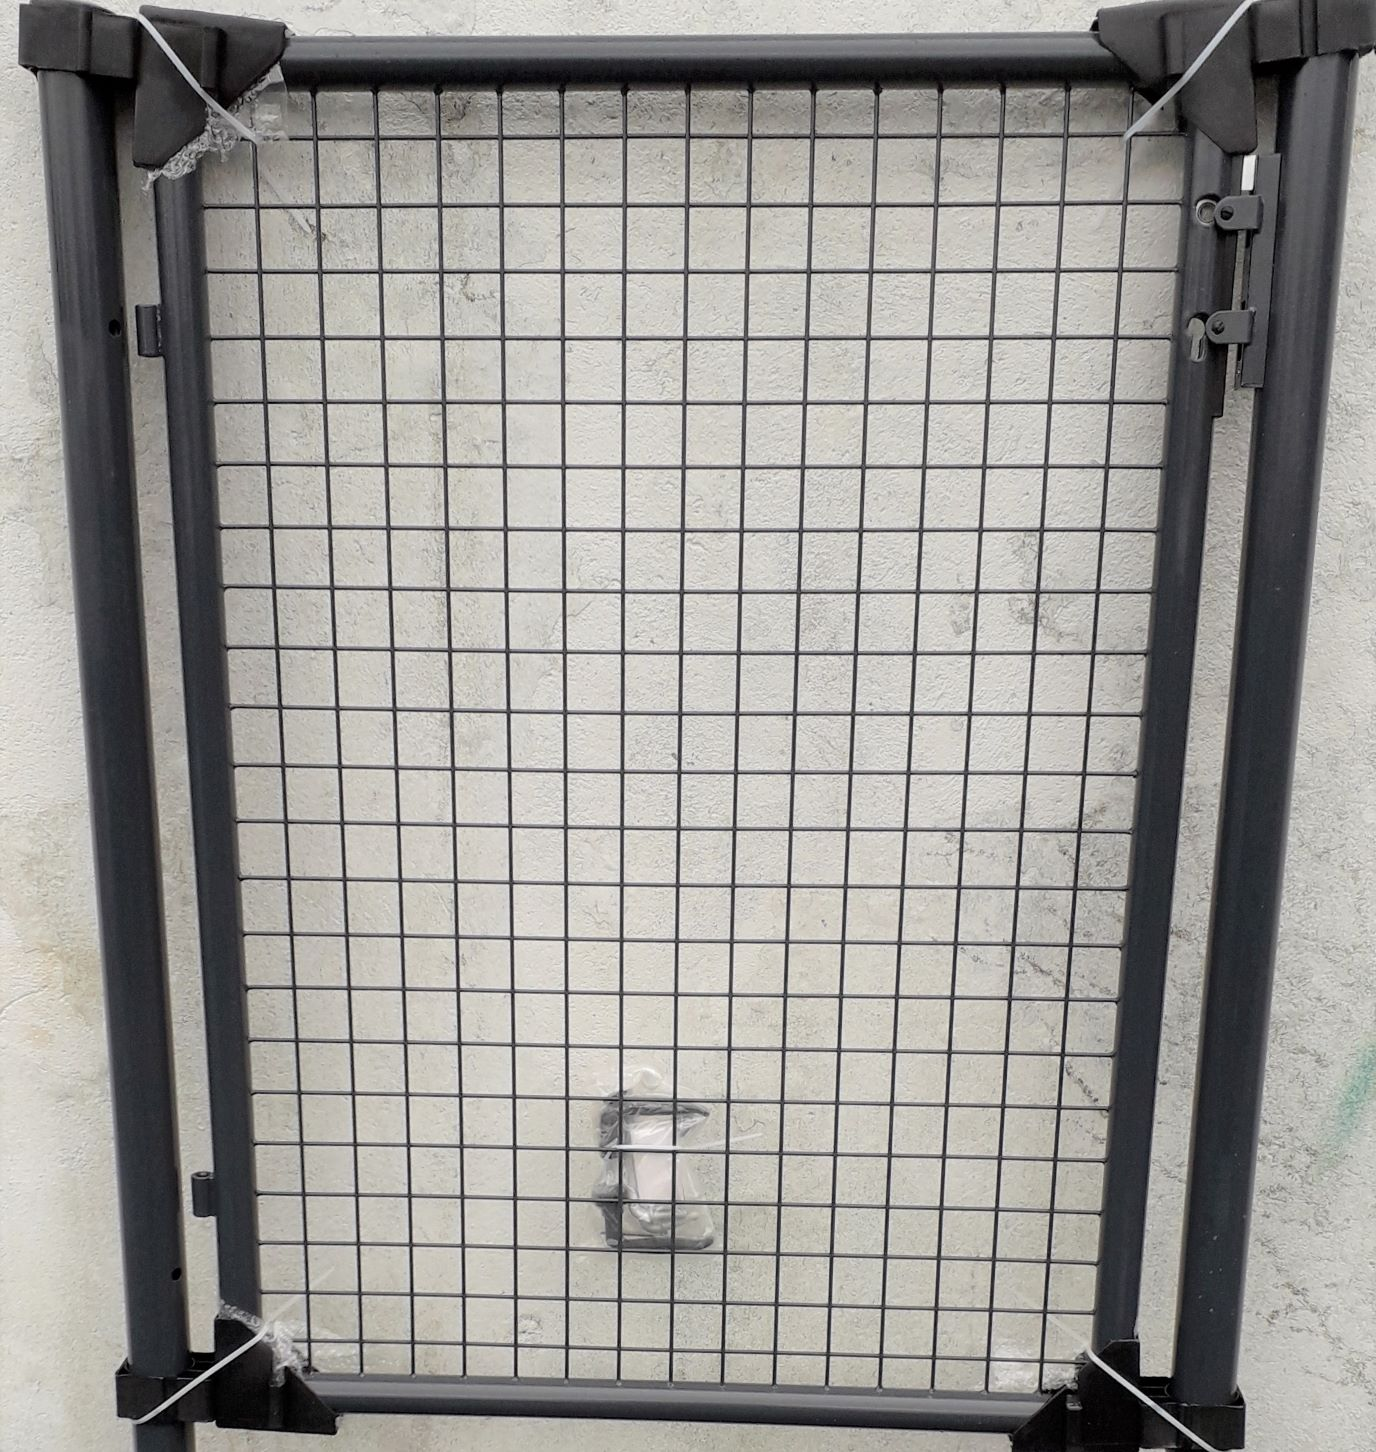 1000mm x 1200mm Residential Gate Kit. GREY Round Frame